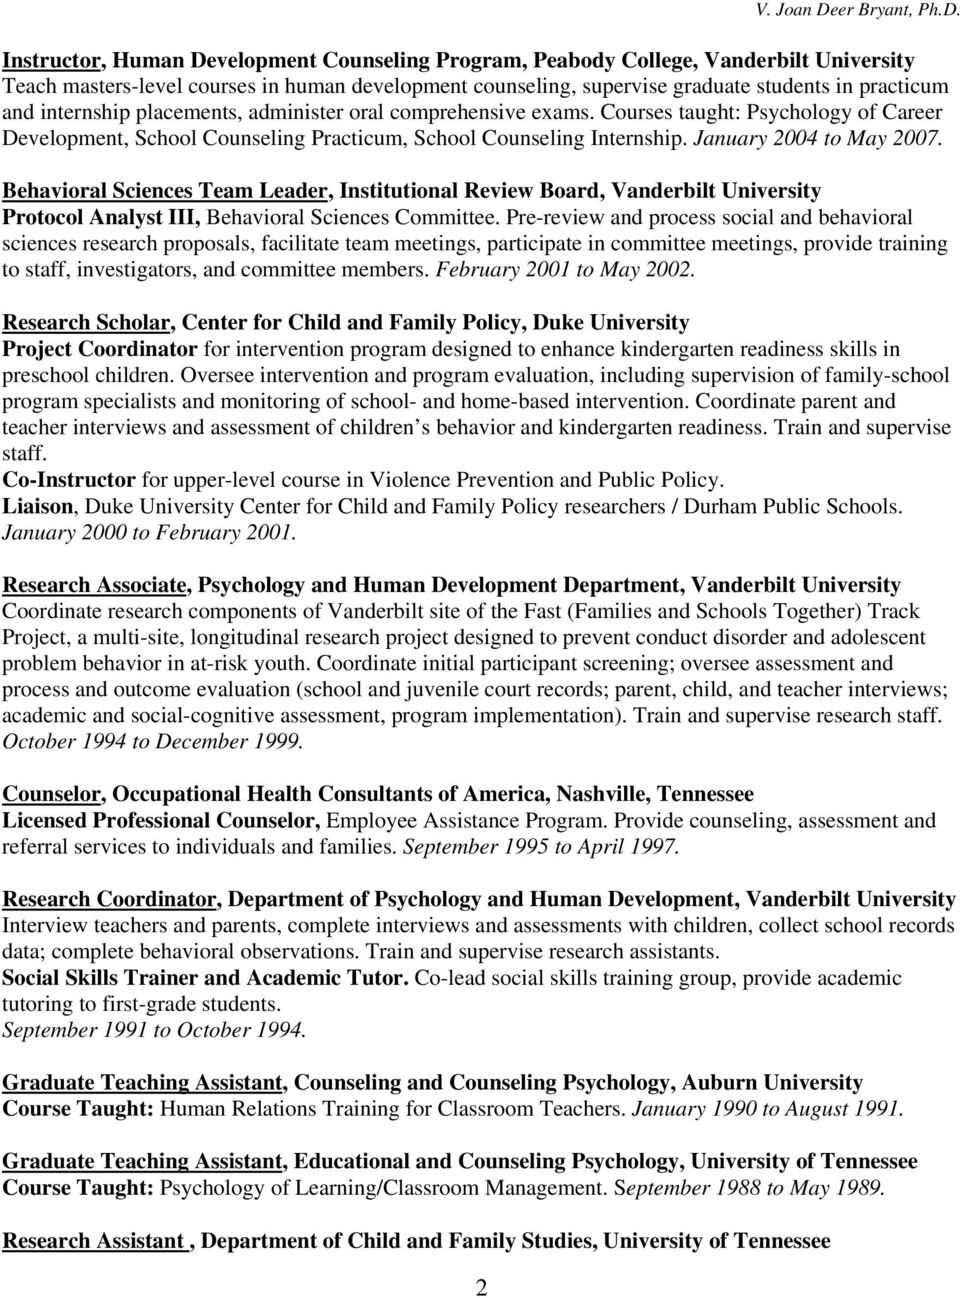 Instructor, Human Development Counseling Program, Peabody College, Vanderbilt University Teach masters-level courses in human development counseling, supervise graduate students in practicum and